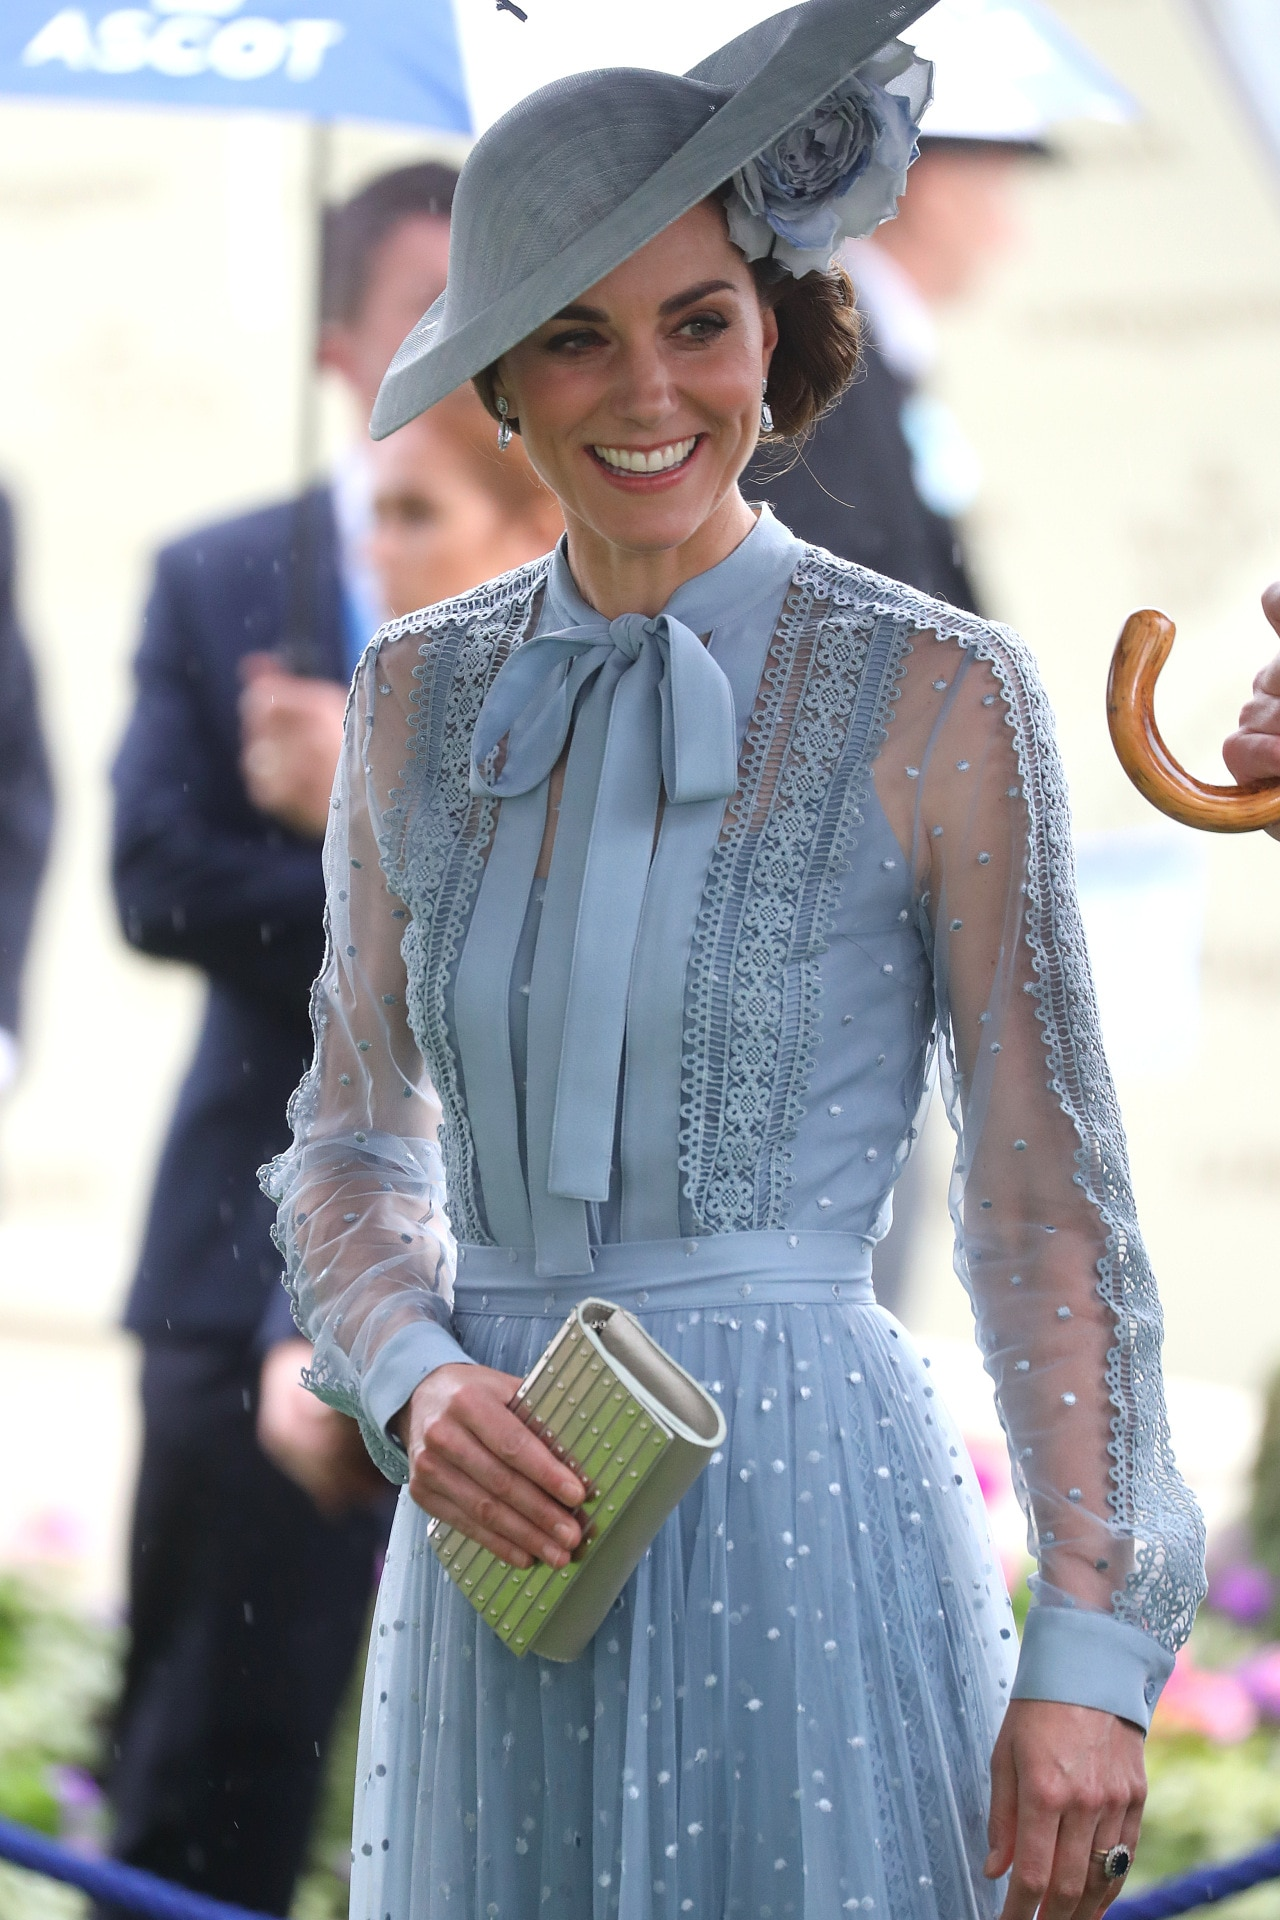 Kate Middleton led the blue trend in Elie Saab at Royal Ascot 2019